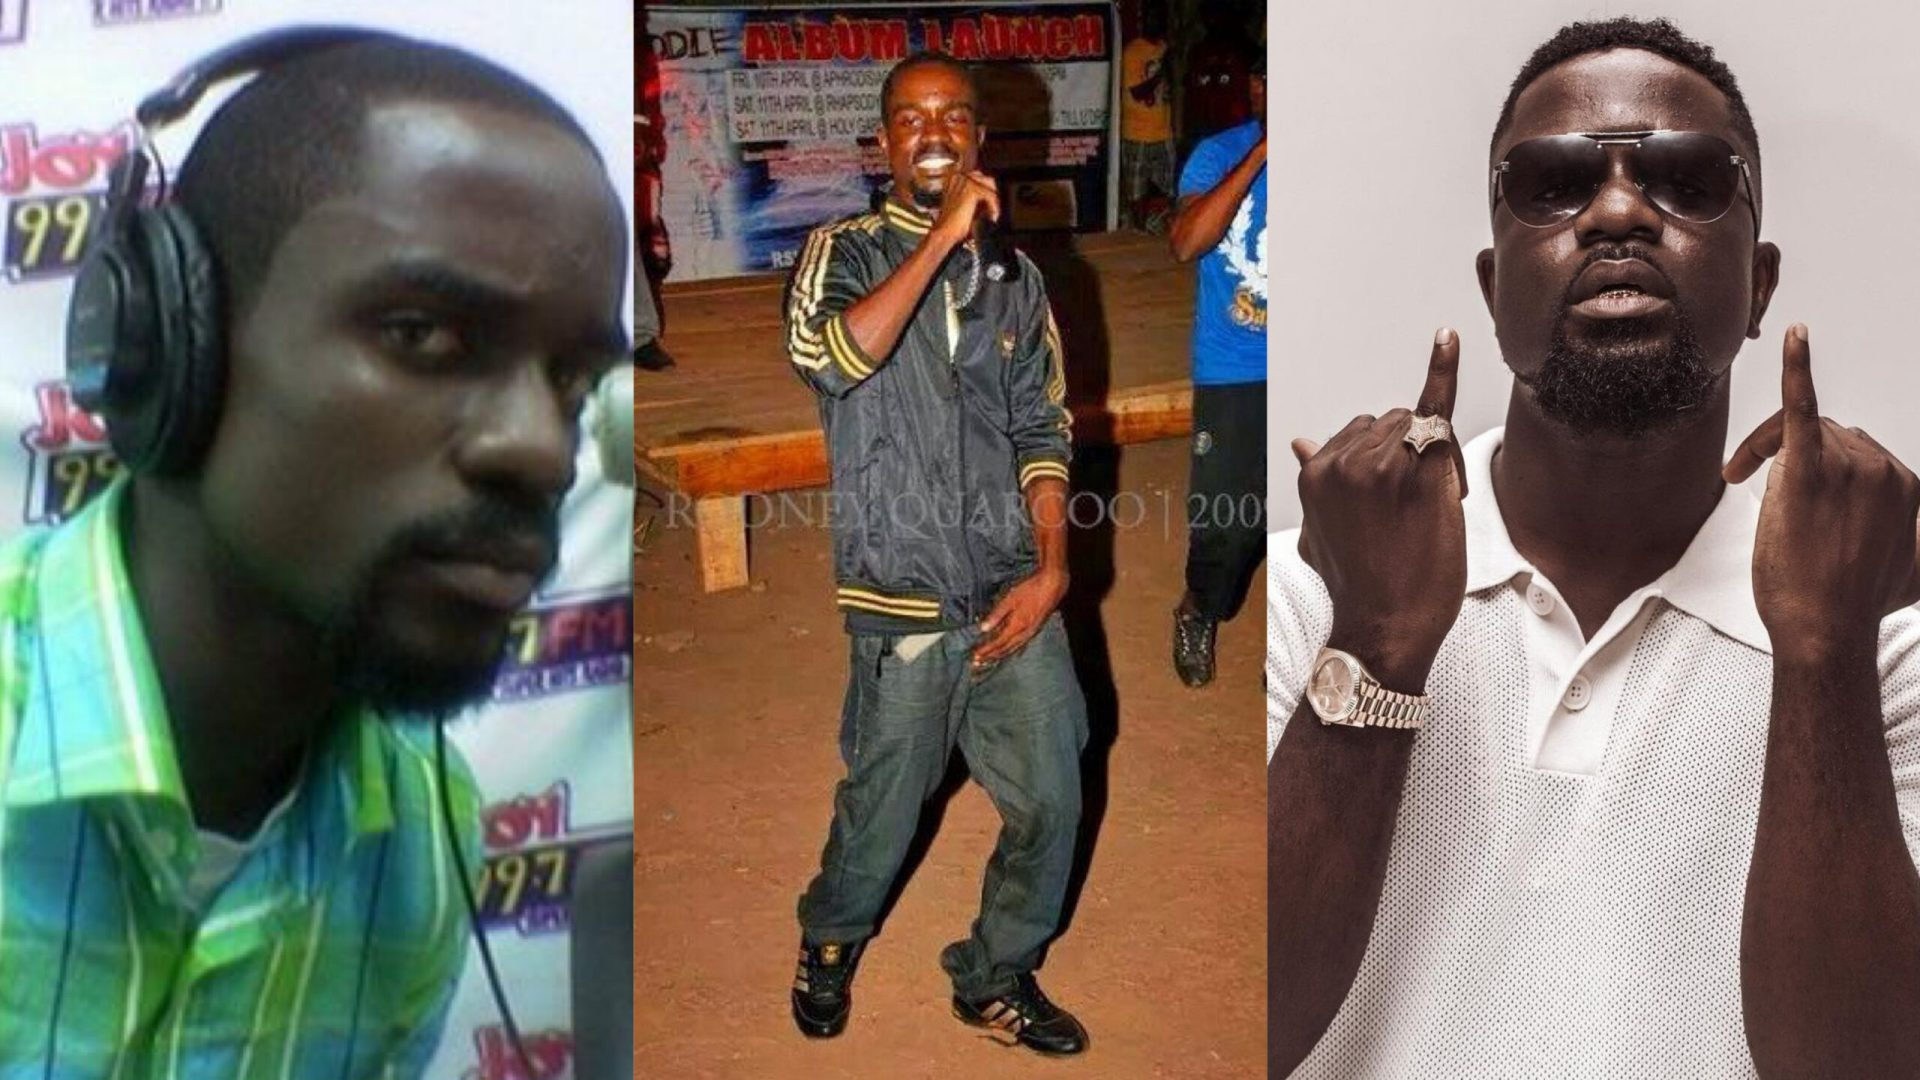 Dear Sarkodie: Remember the streets made you who you are; don't be an ingrate [Article]